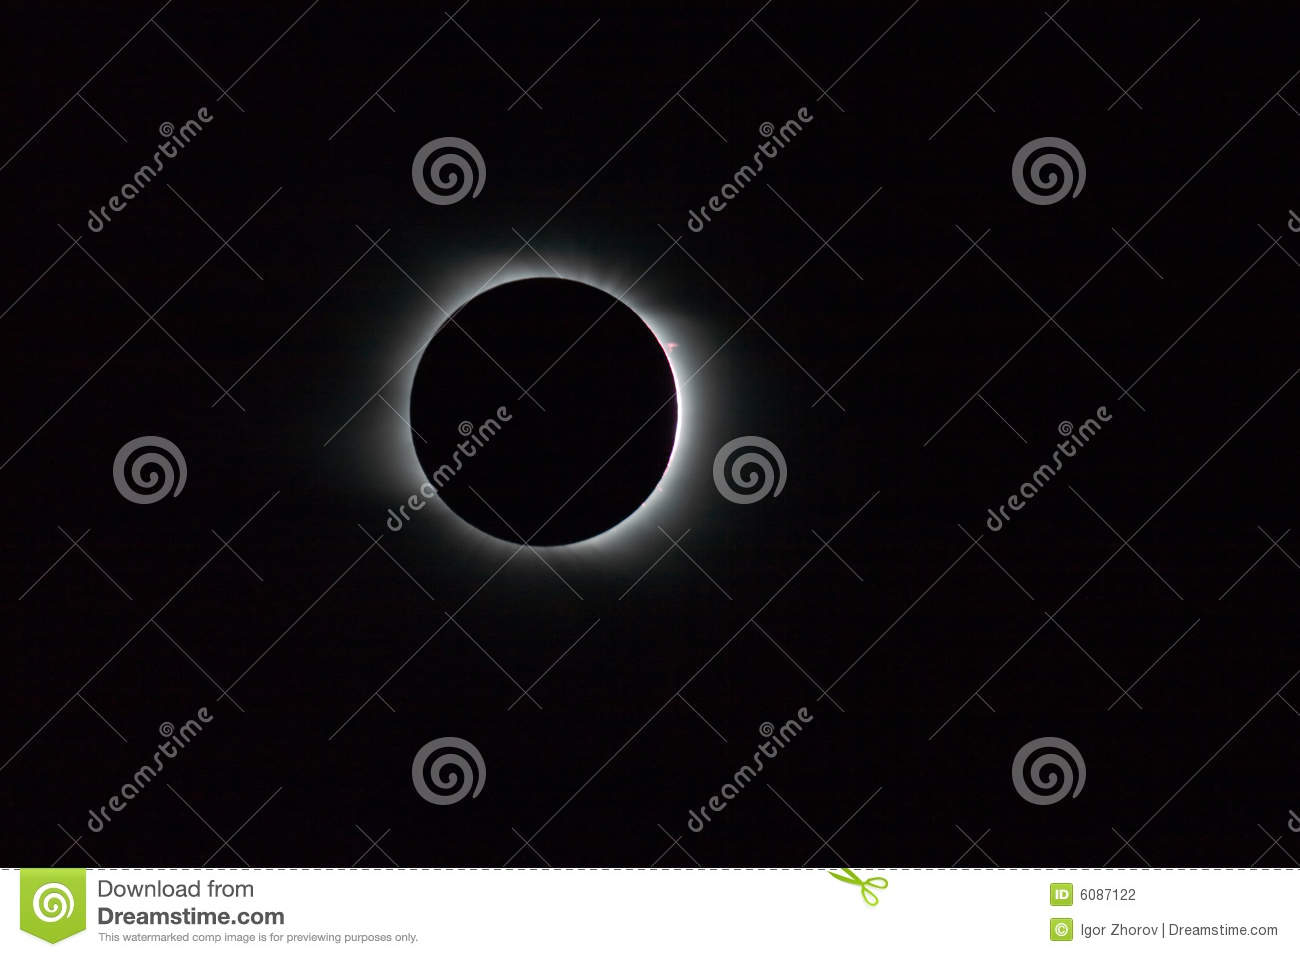 Solar eclipse stock photo  Image of planetery, orbit, astrology